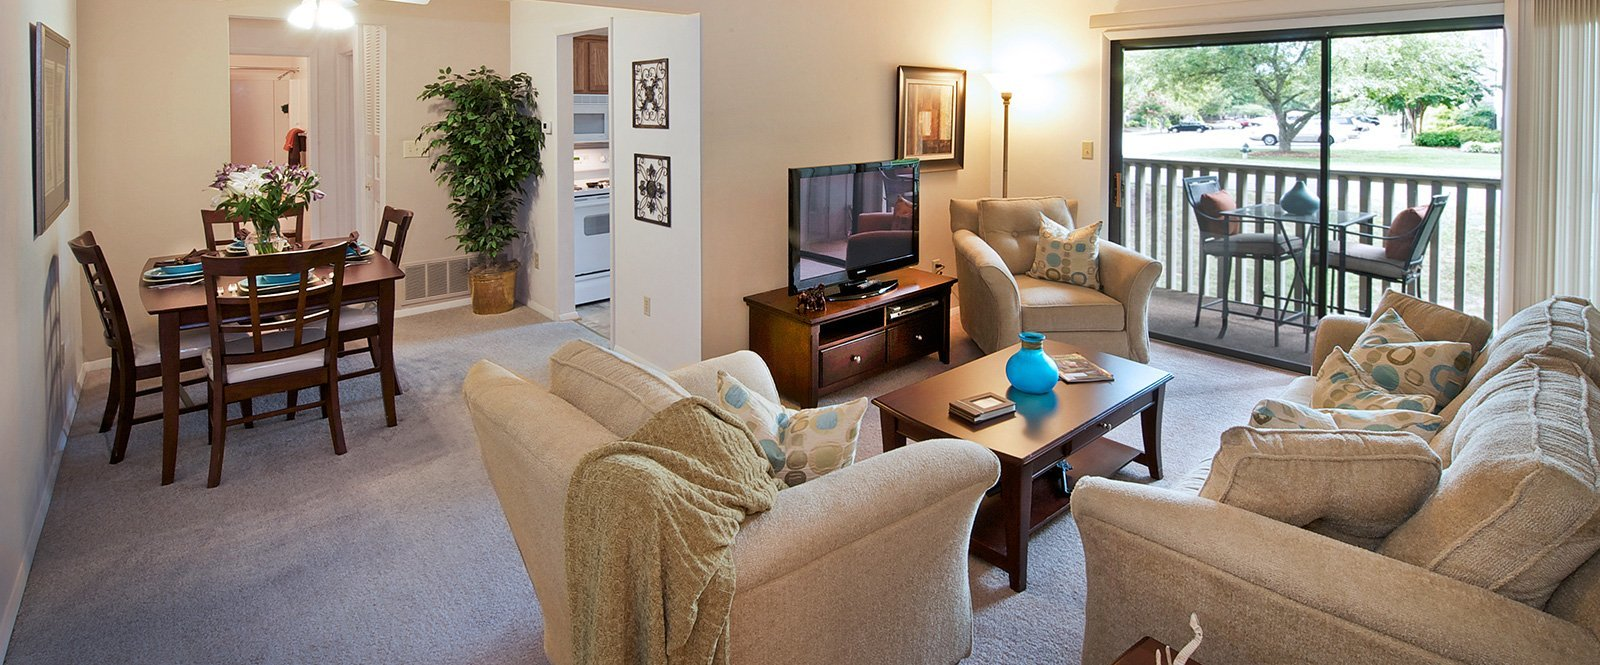 Best Apartments In Roanoke Va Honeywood Apartments With Pictures